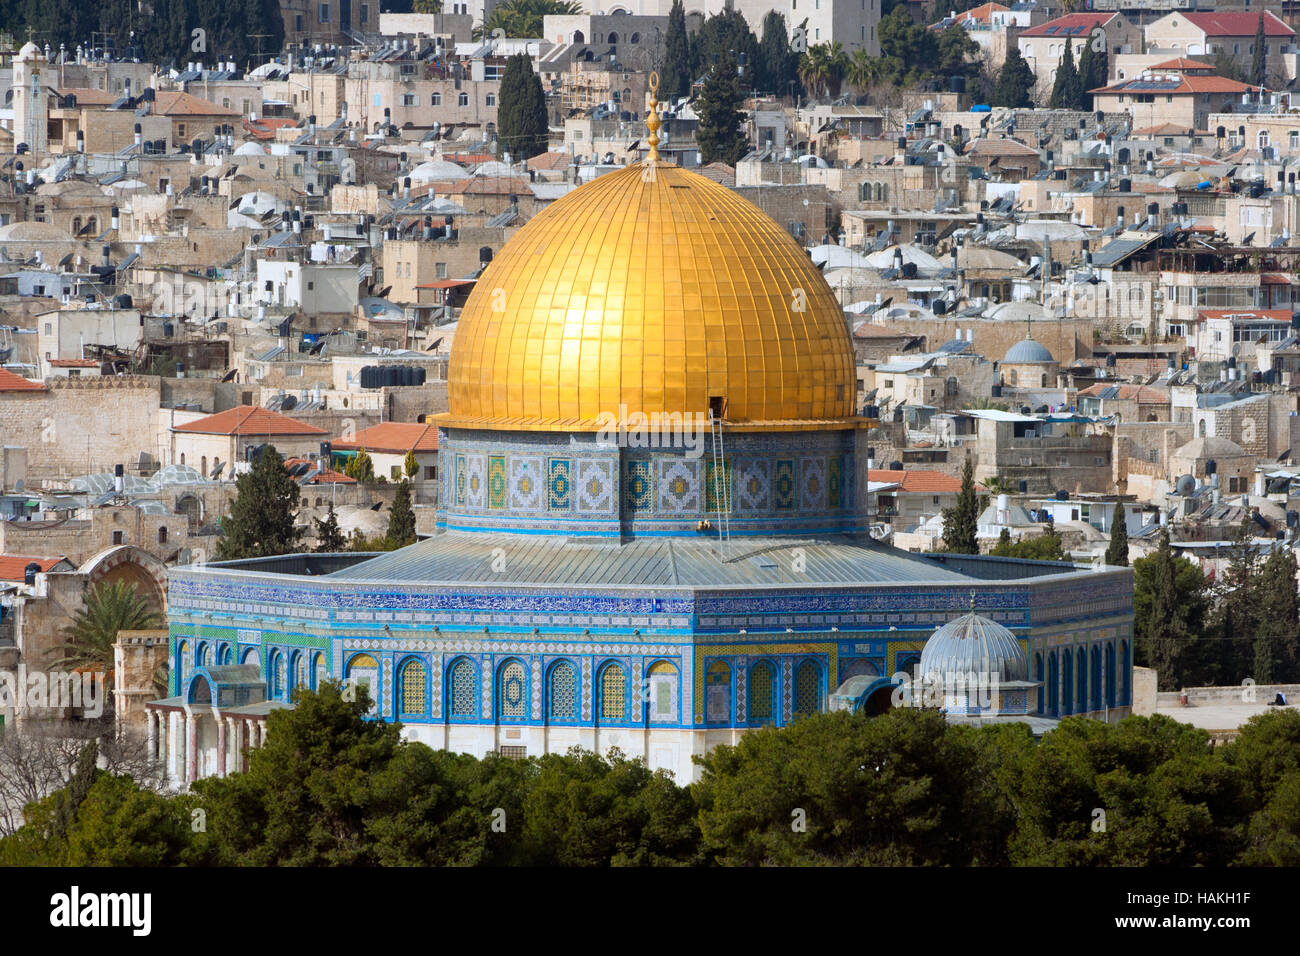 Dome of the Rock on the temple mount in Jerusalem - Israel Stock Photo